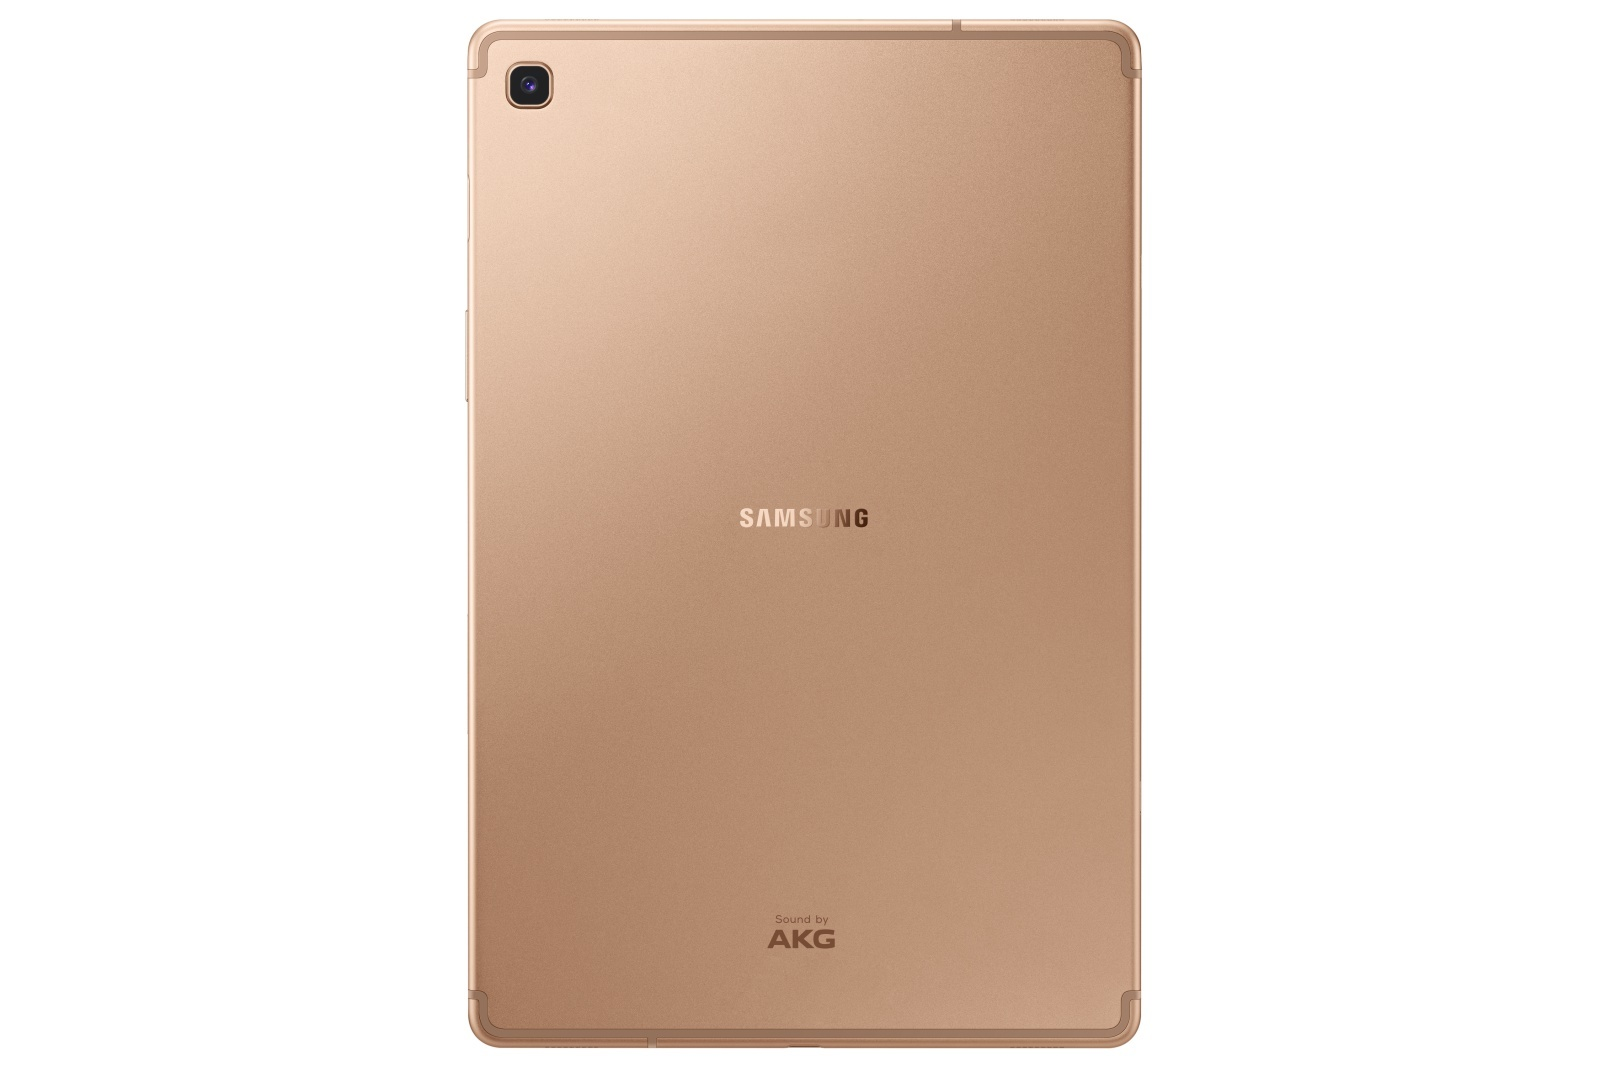 Galaxy-Tab-S5e-SM-T725-002-Back-Gold